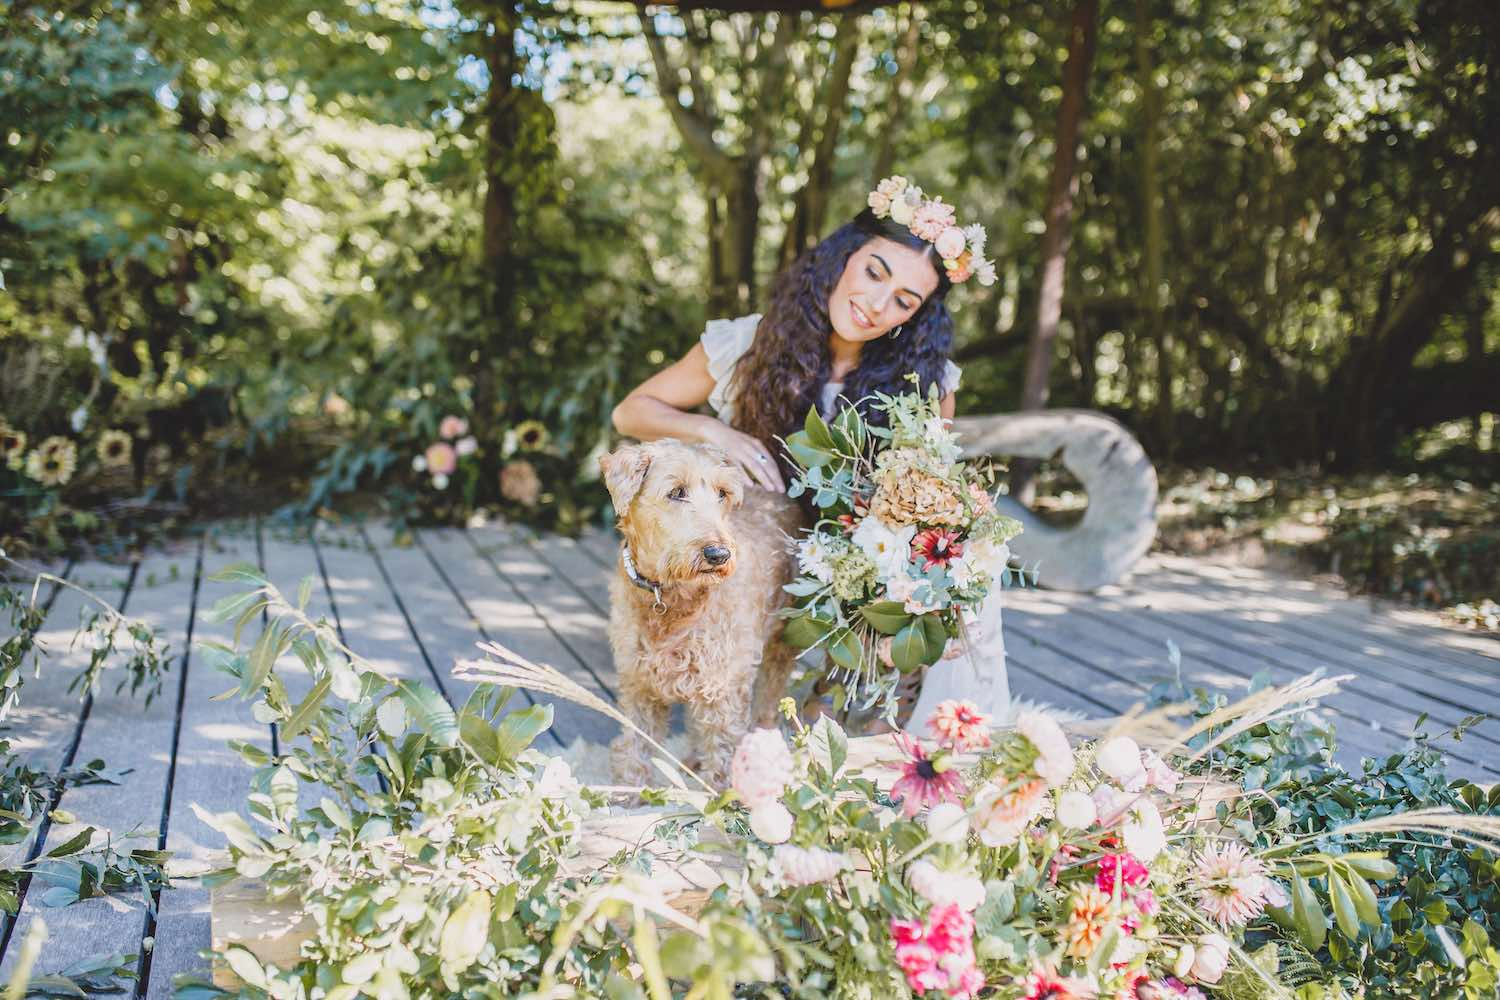 Woodland bride with flowers and dog on ceremony stage